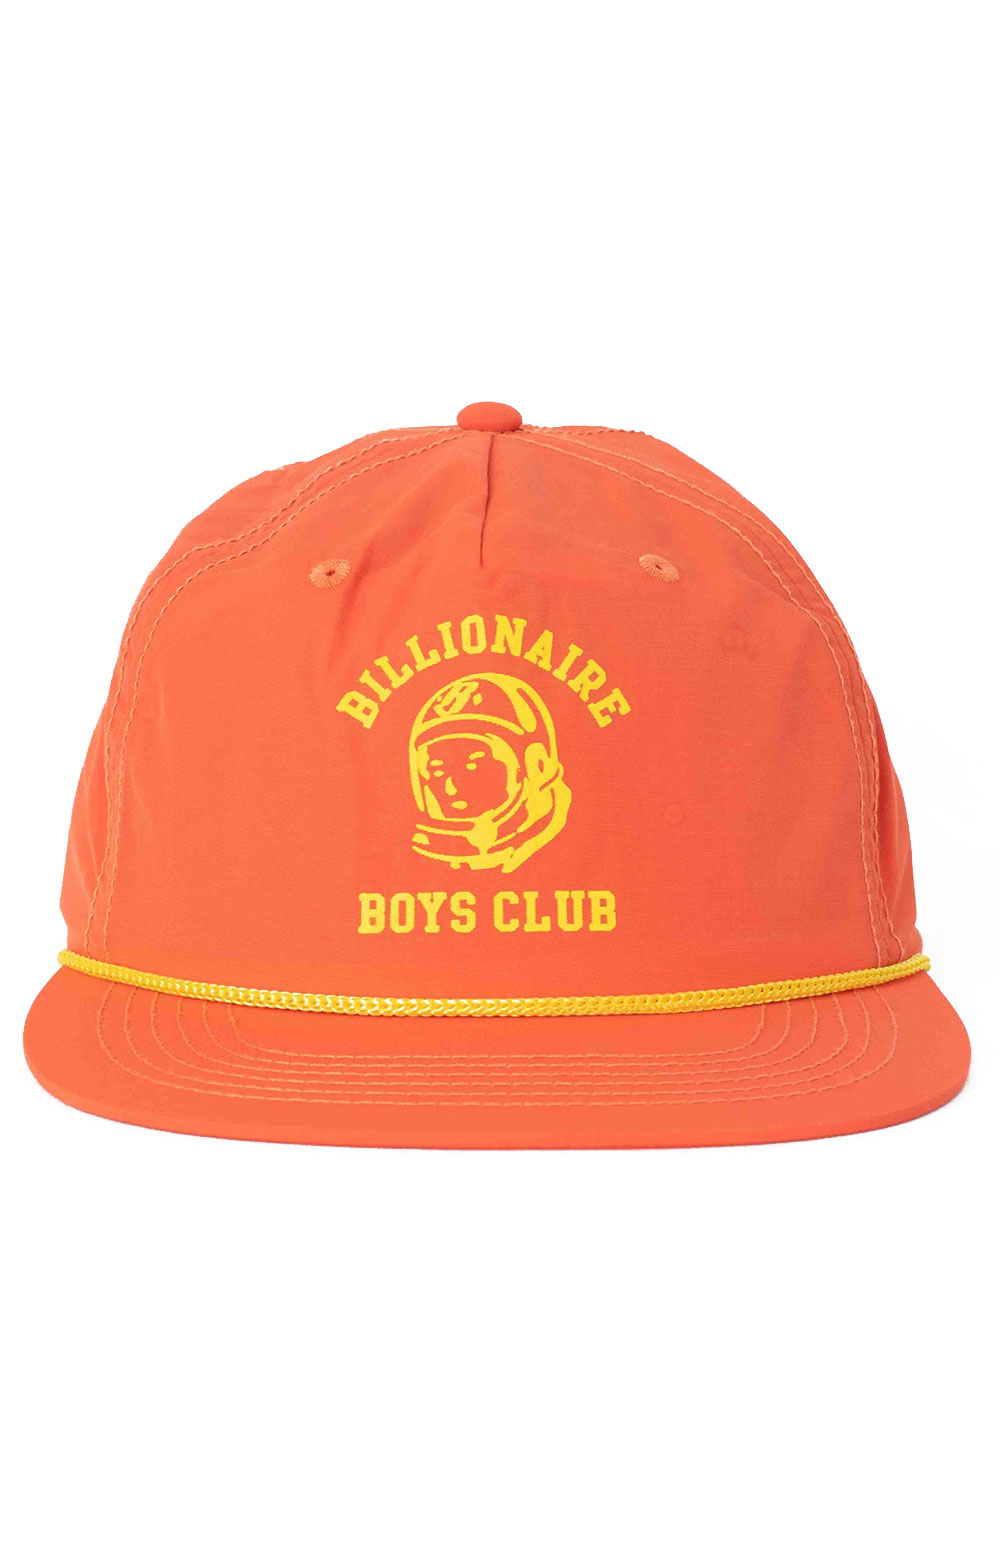 Clubhouse Snap-Back Hat - Hot Coral  2